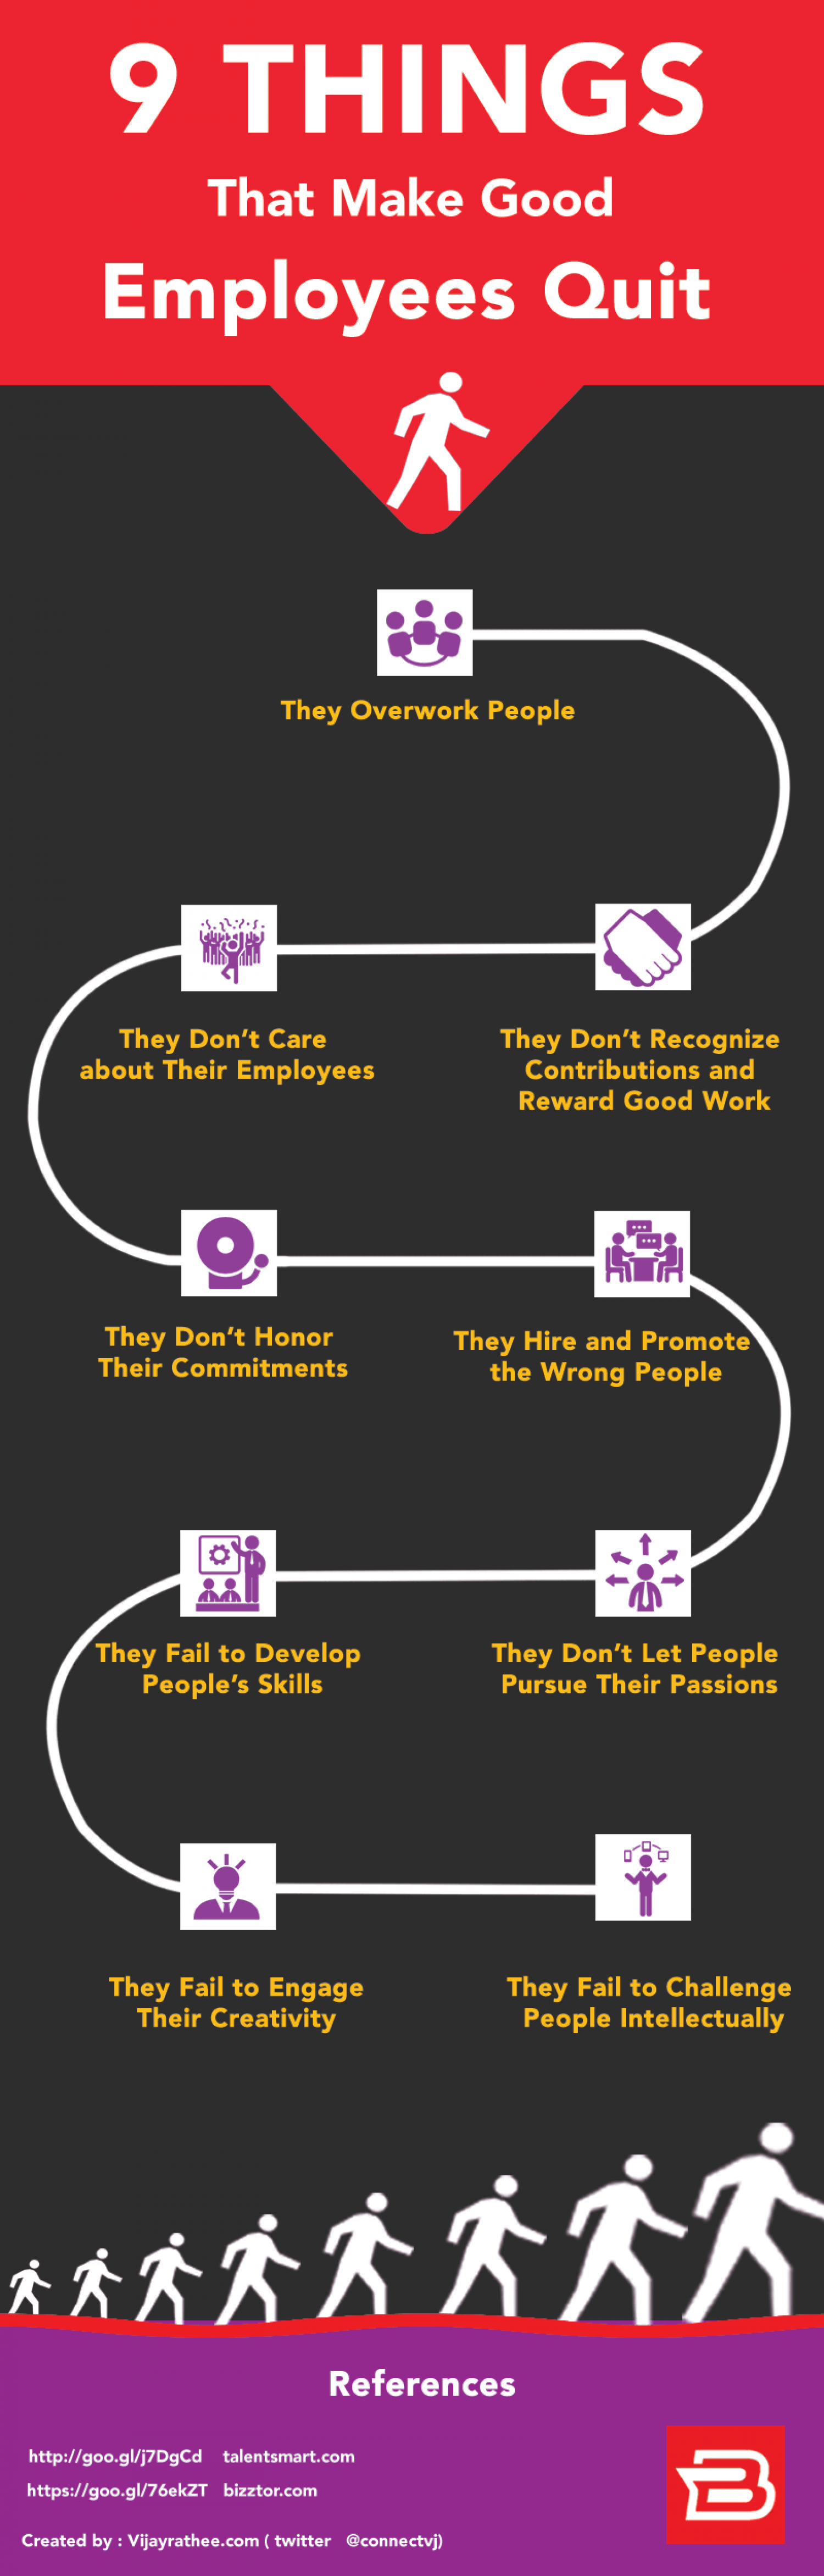 9 Things That Make Good Employees Quit Infographic